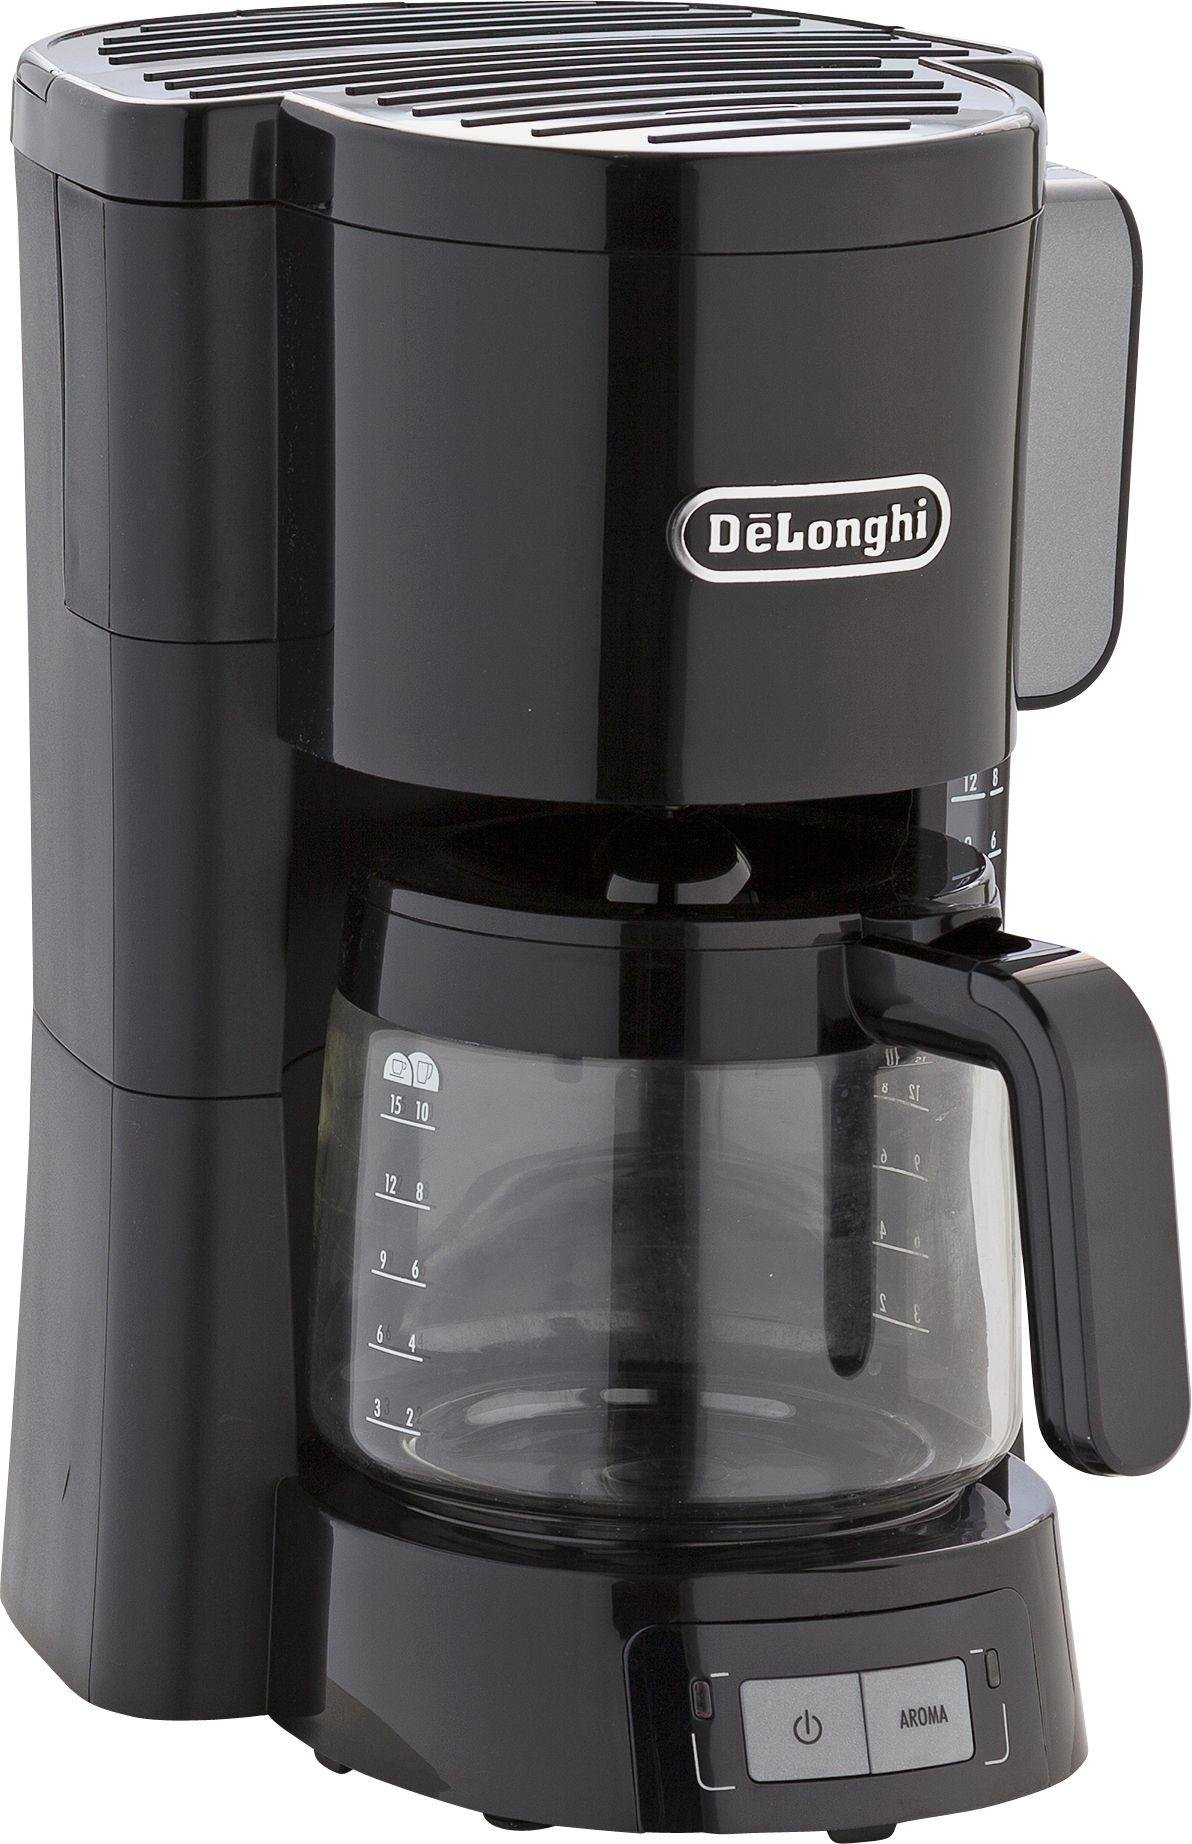 Coffee Maker With Grinder Argos : Shop for Coffee, Machines, Accessories, equipment and Gifts